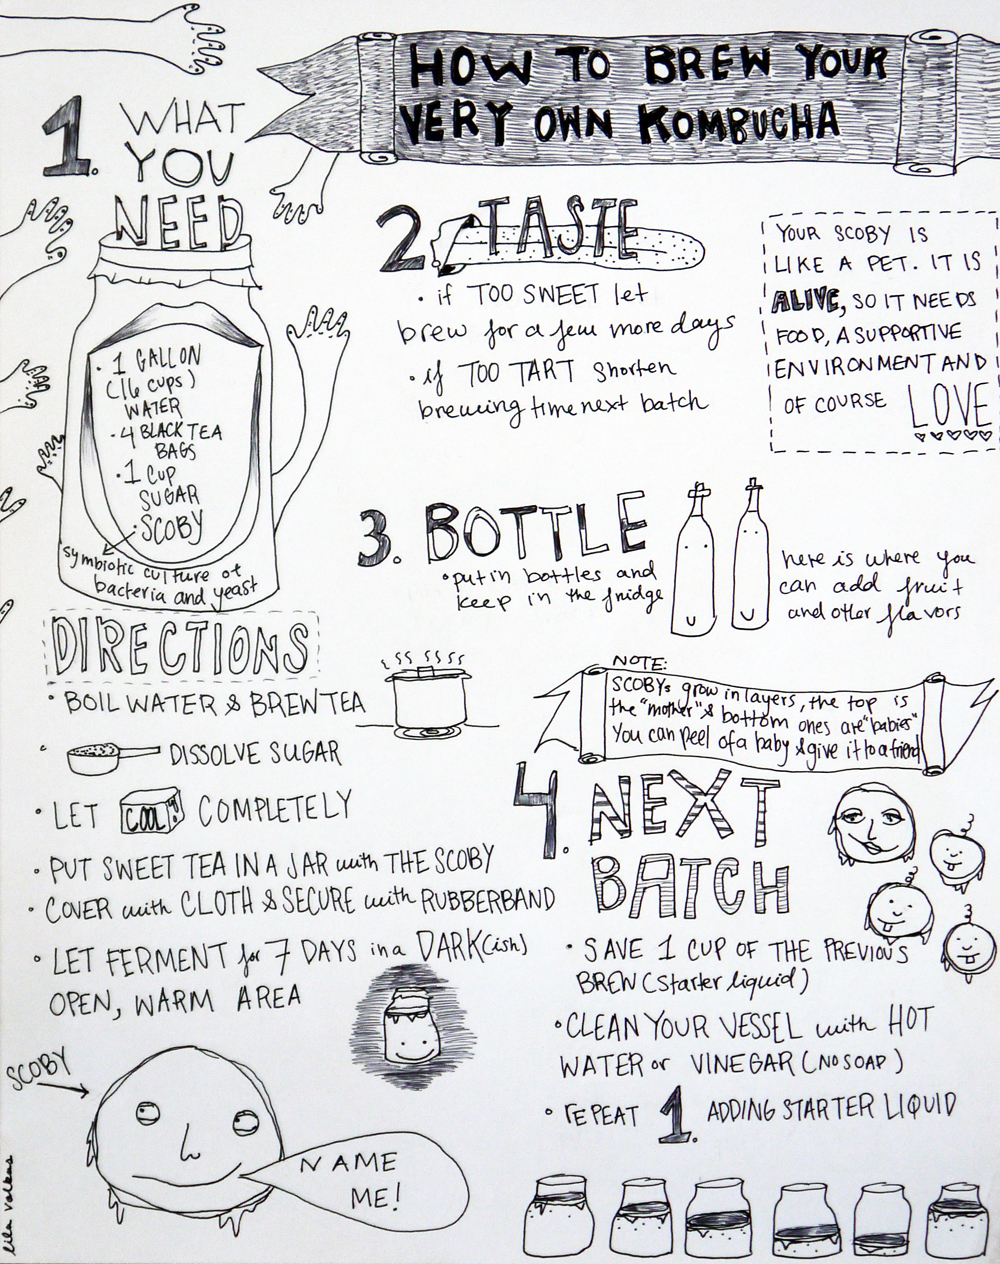 Kombucha instructions. Illustration by Lila Volkas